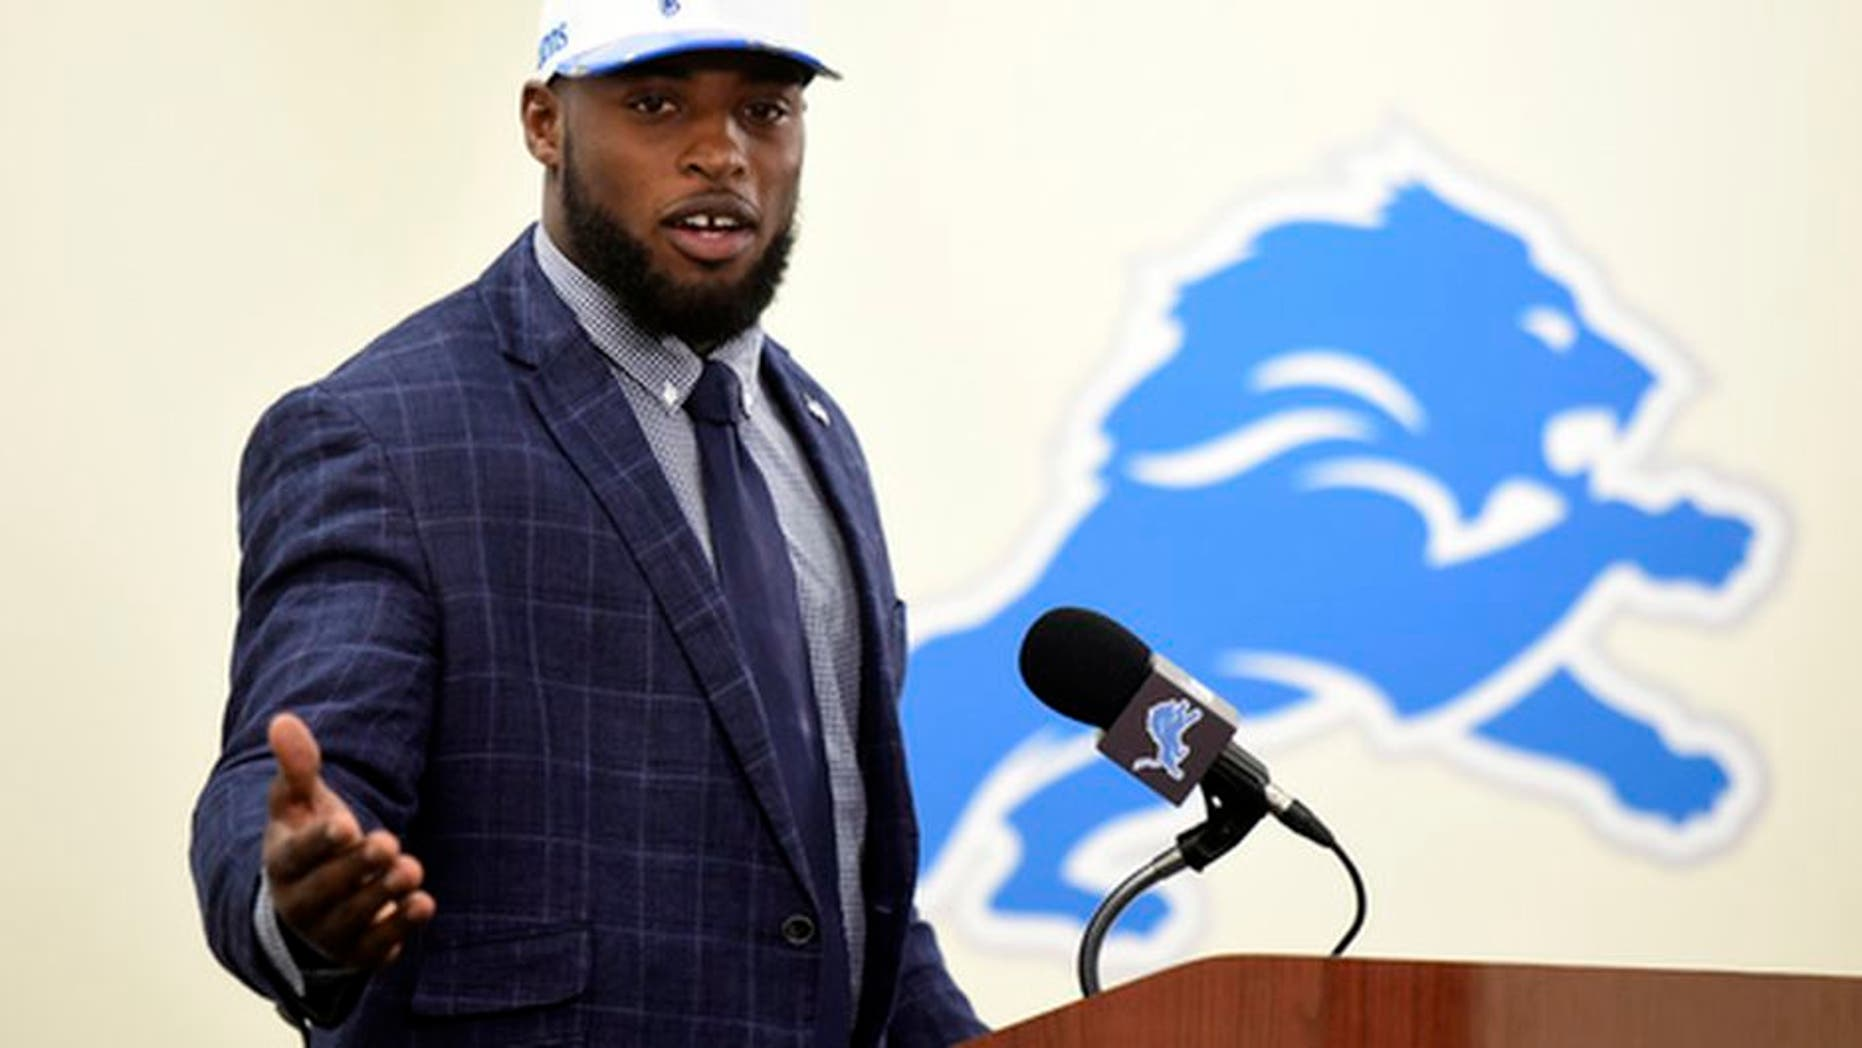 Jarrad Davis, the Detroit Lions first round draft pick, is introduced at an NFL football press conference, Friday, April 28, 2017, in Allen Park, Mich. Davis, a linebacker at Florida, was selected 21st overall. (Daniel Mears/Detroit News via AP)